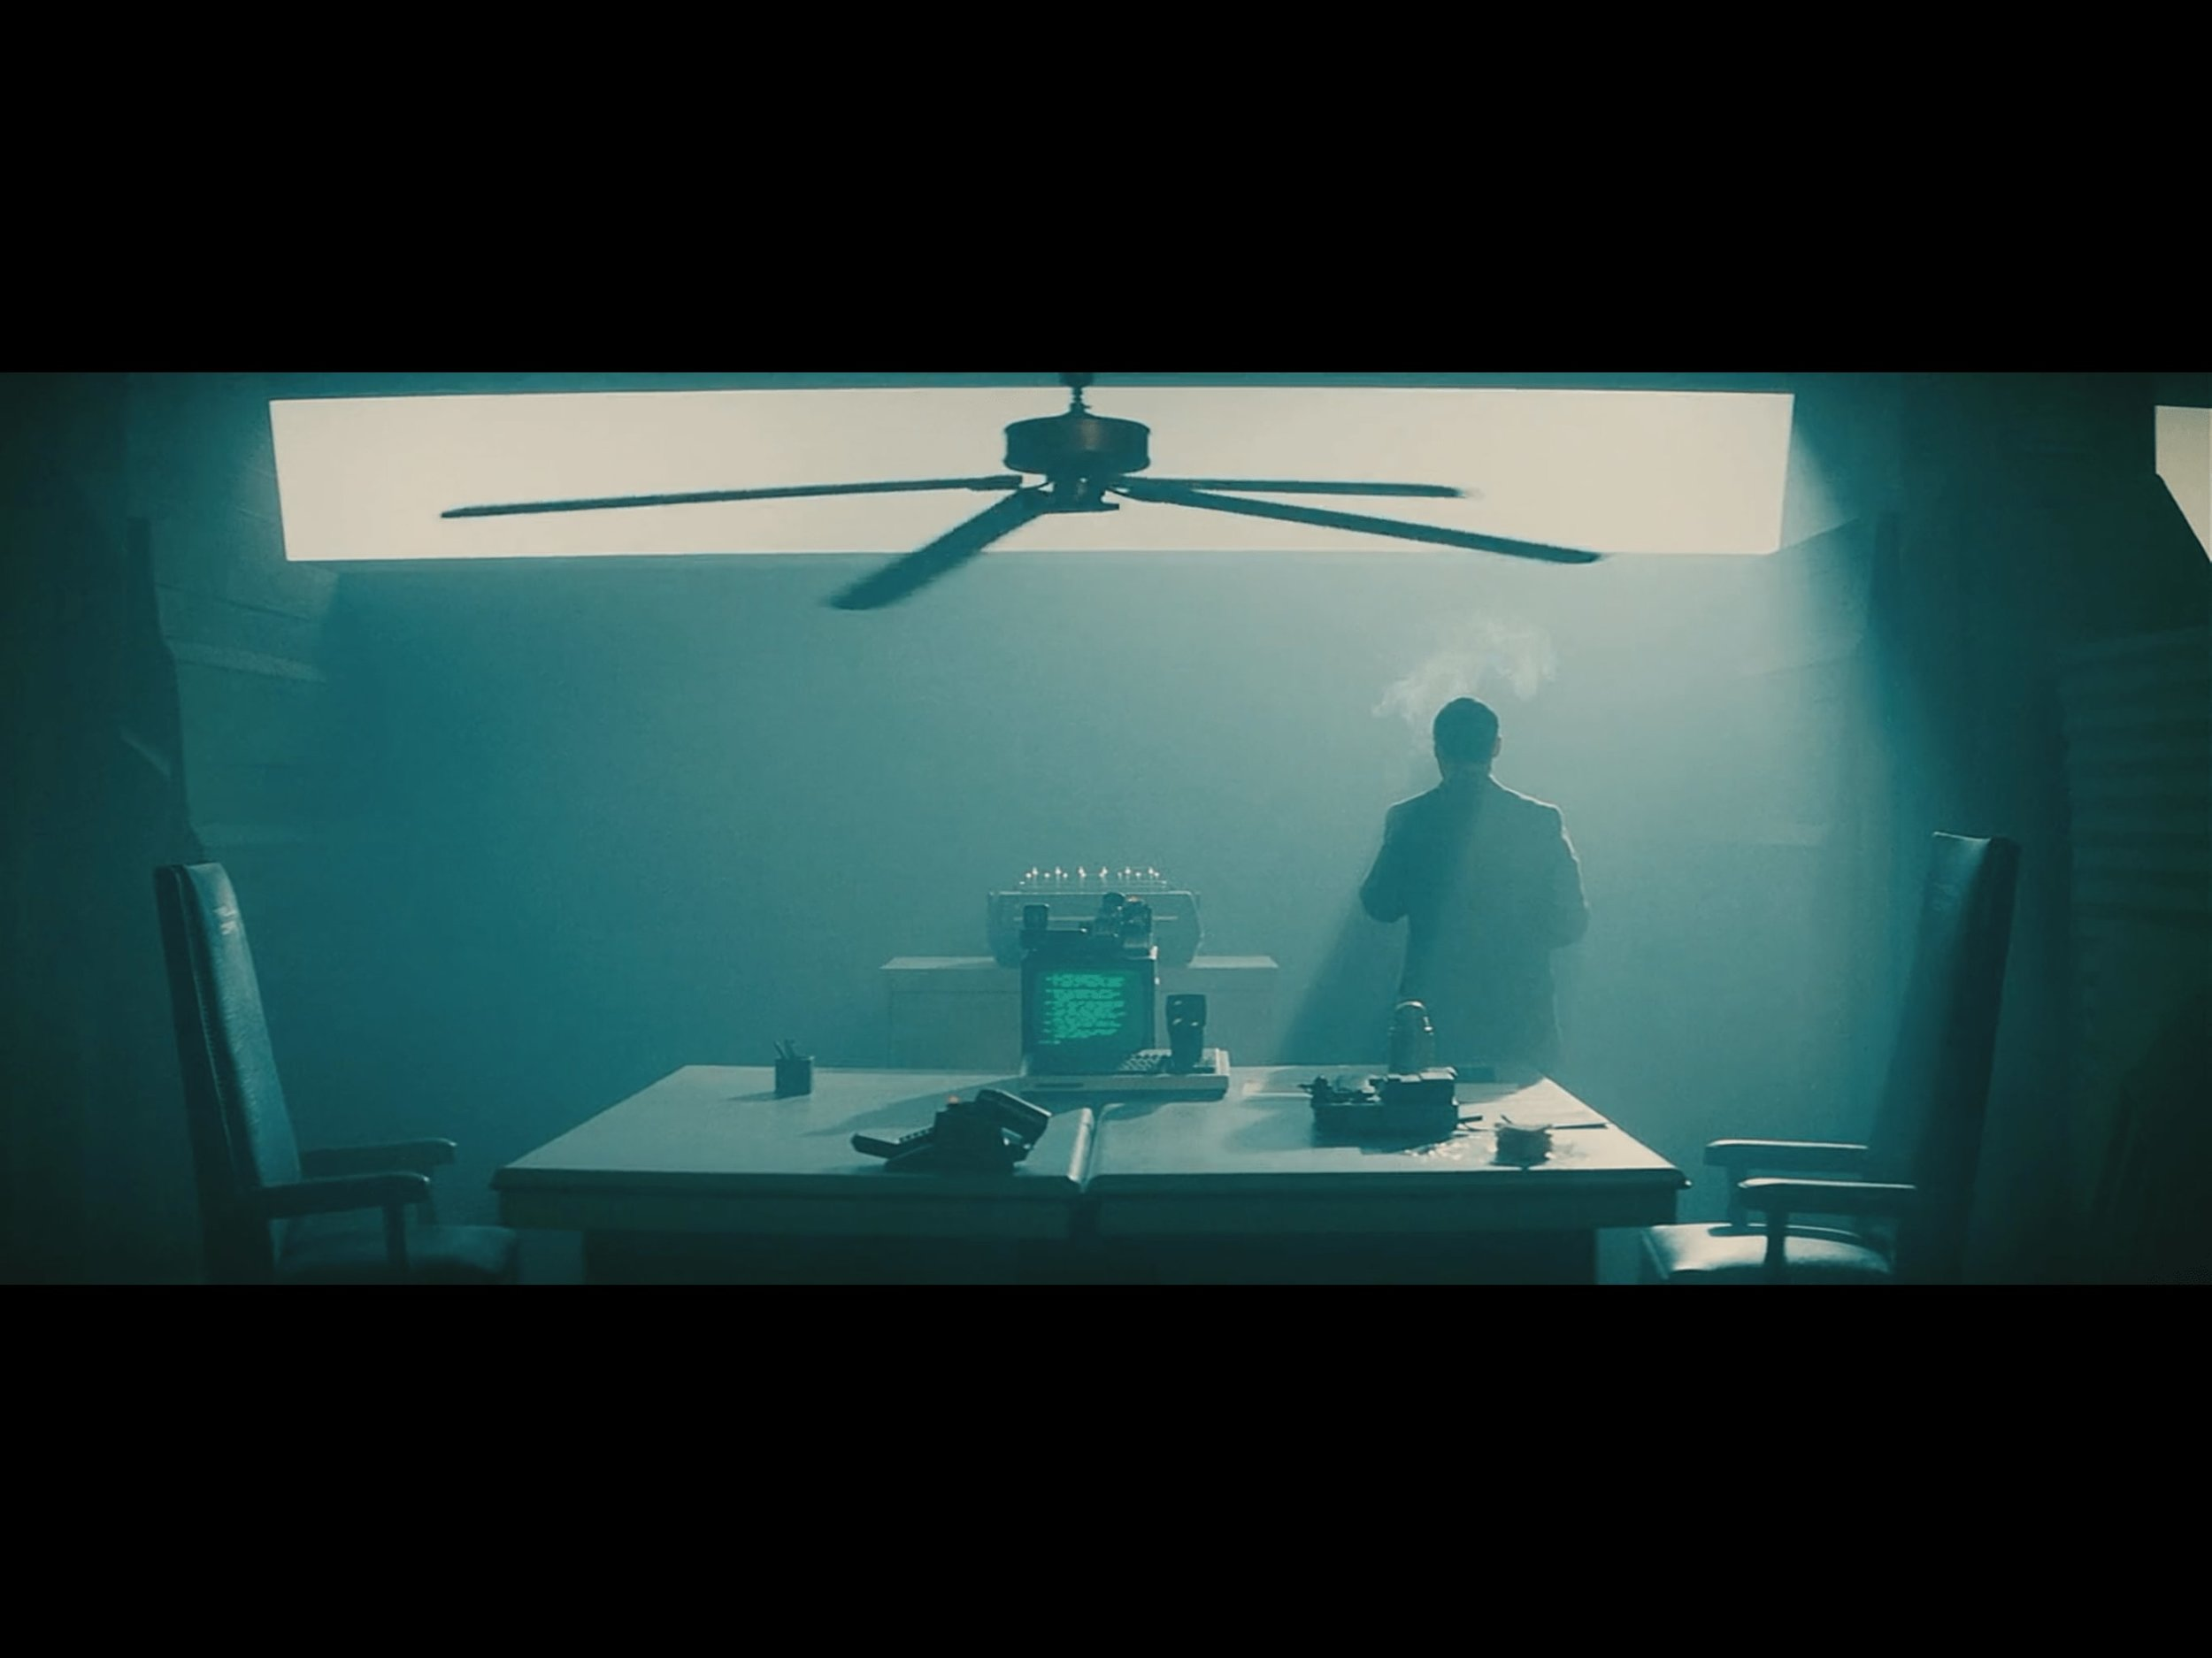 blade-runner-movie-1982-screenshot-4-min.jpg